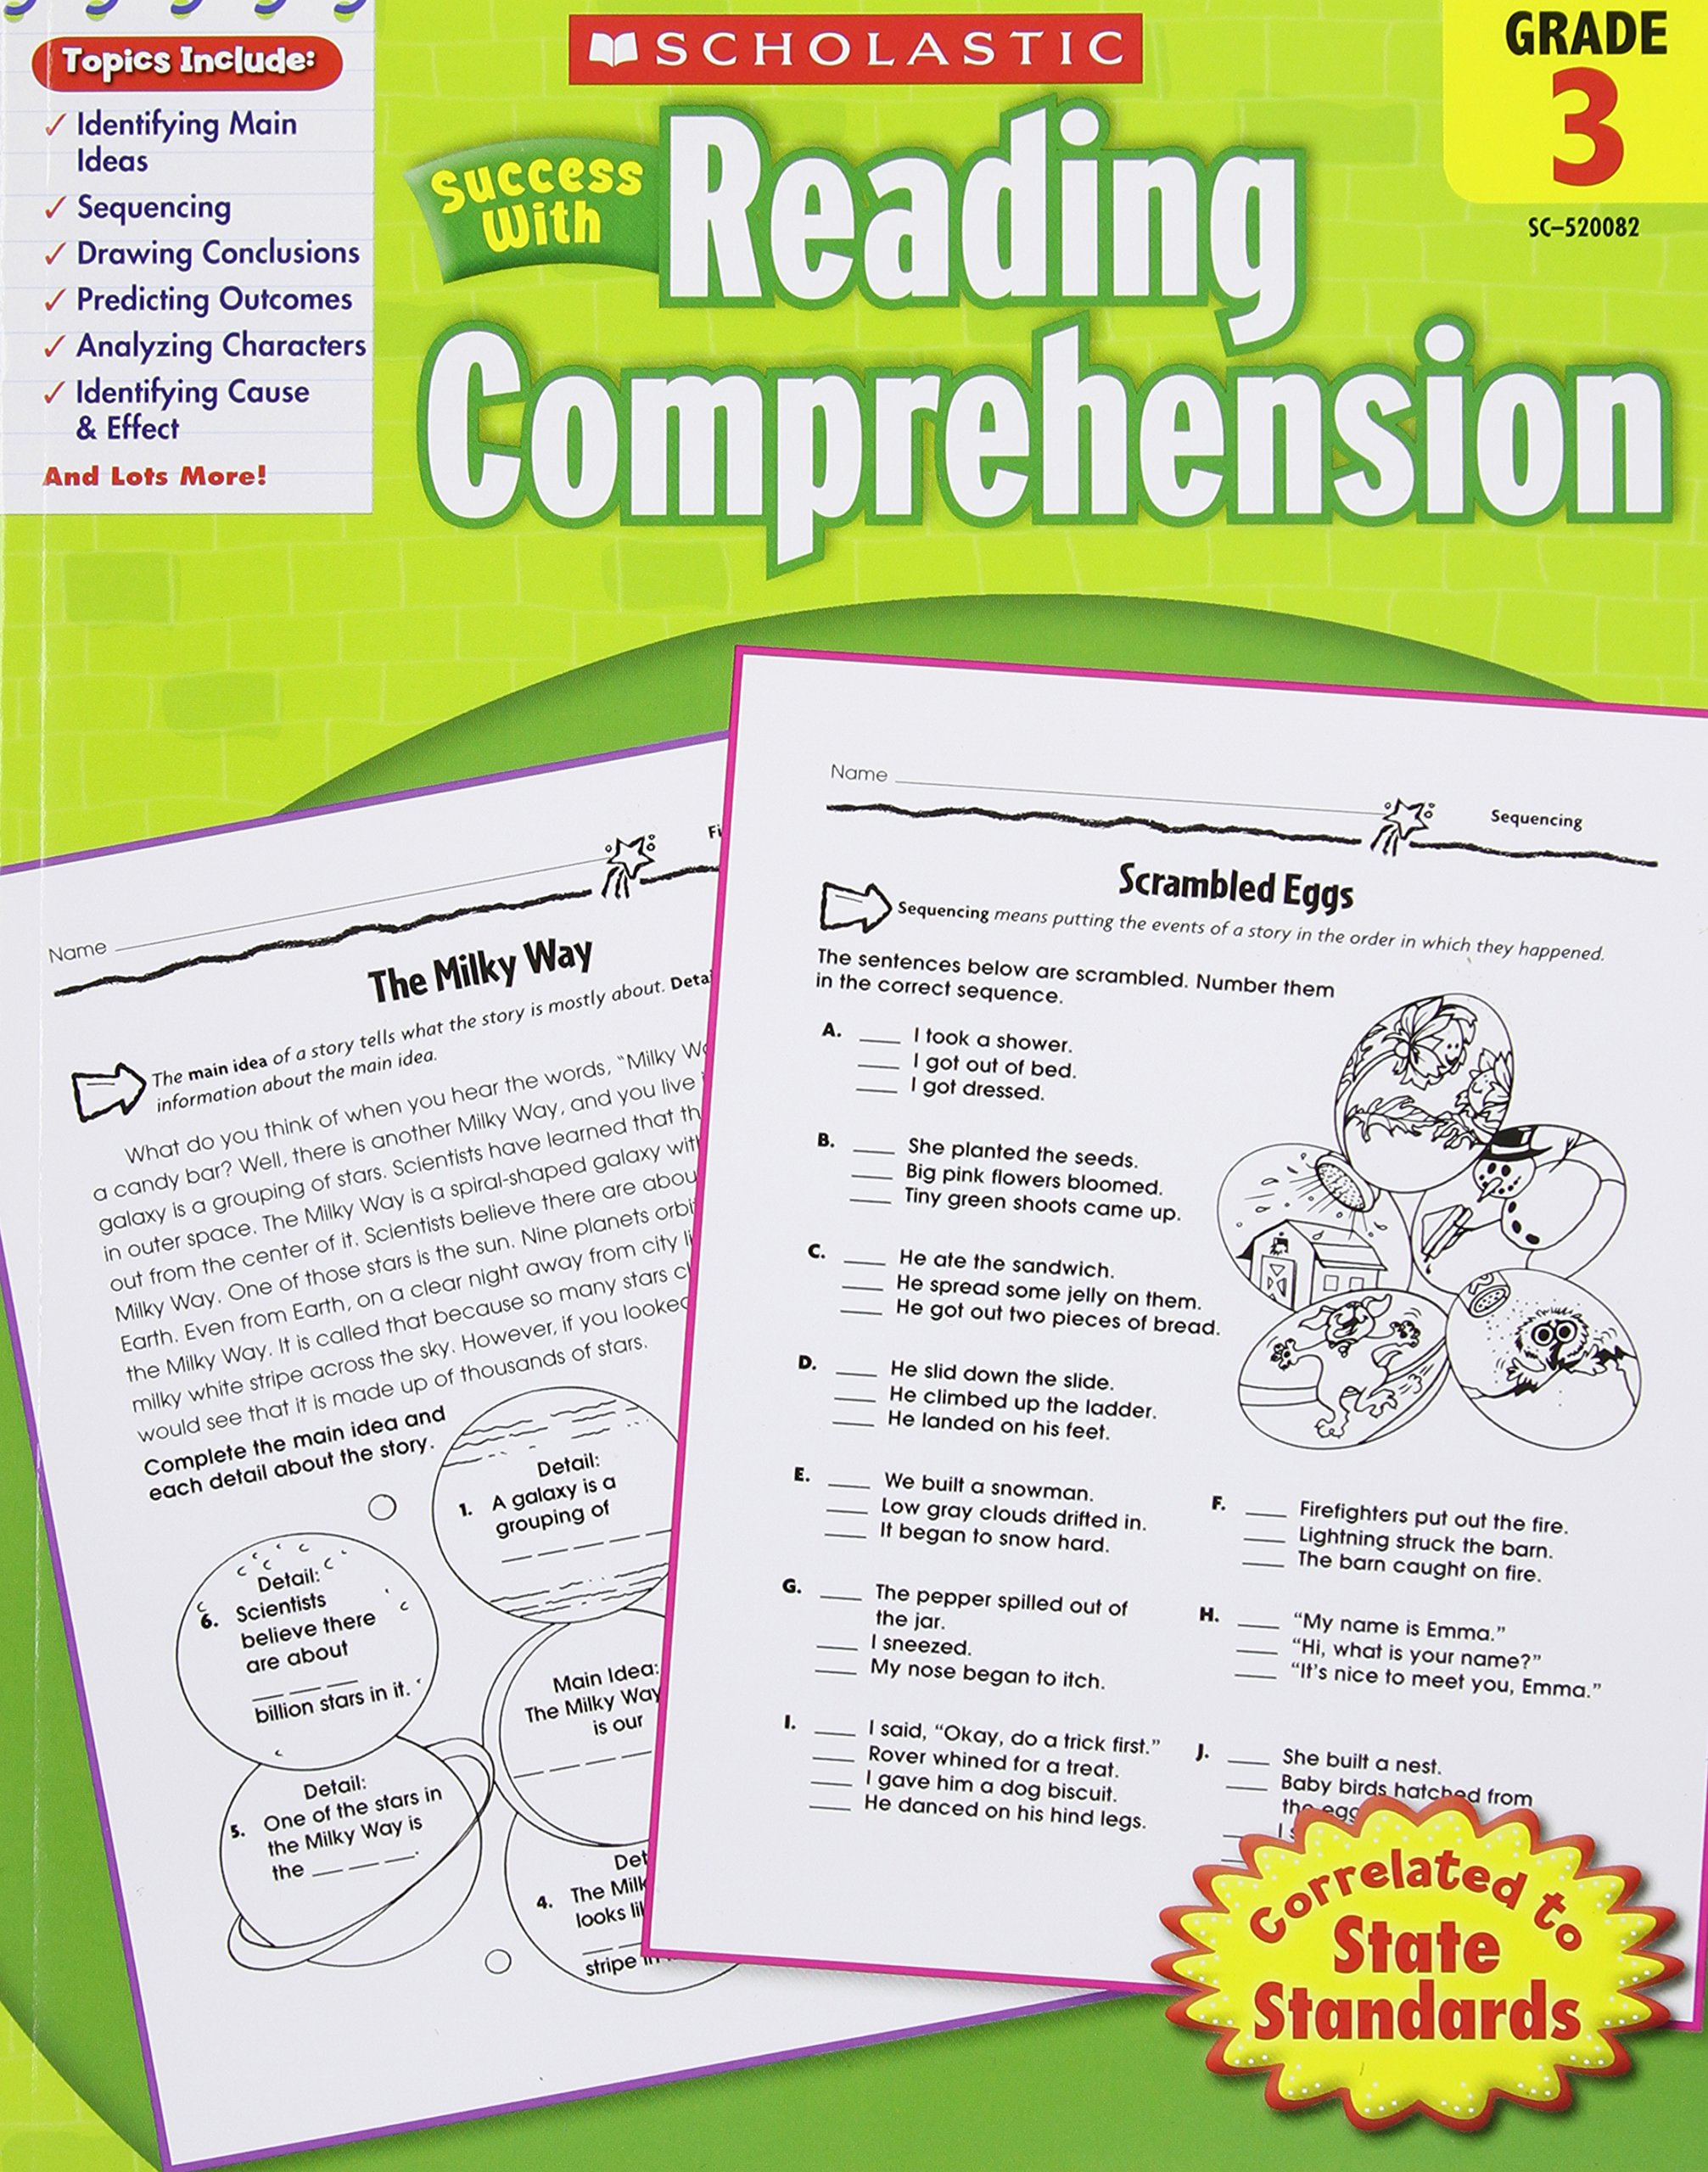 Worksheet Comprehension Tests Grade 3 comprehension test grade 3 english 2nd reading prehension buy scholastic success with book